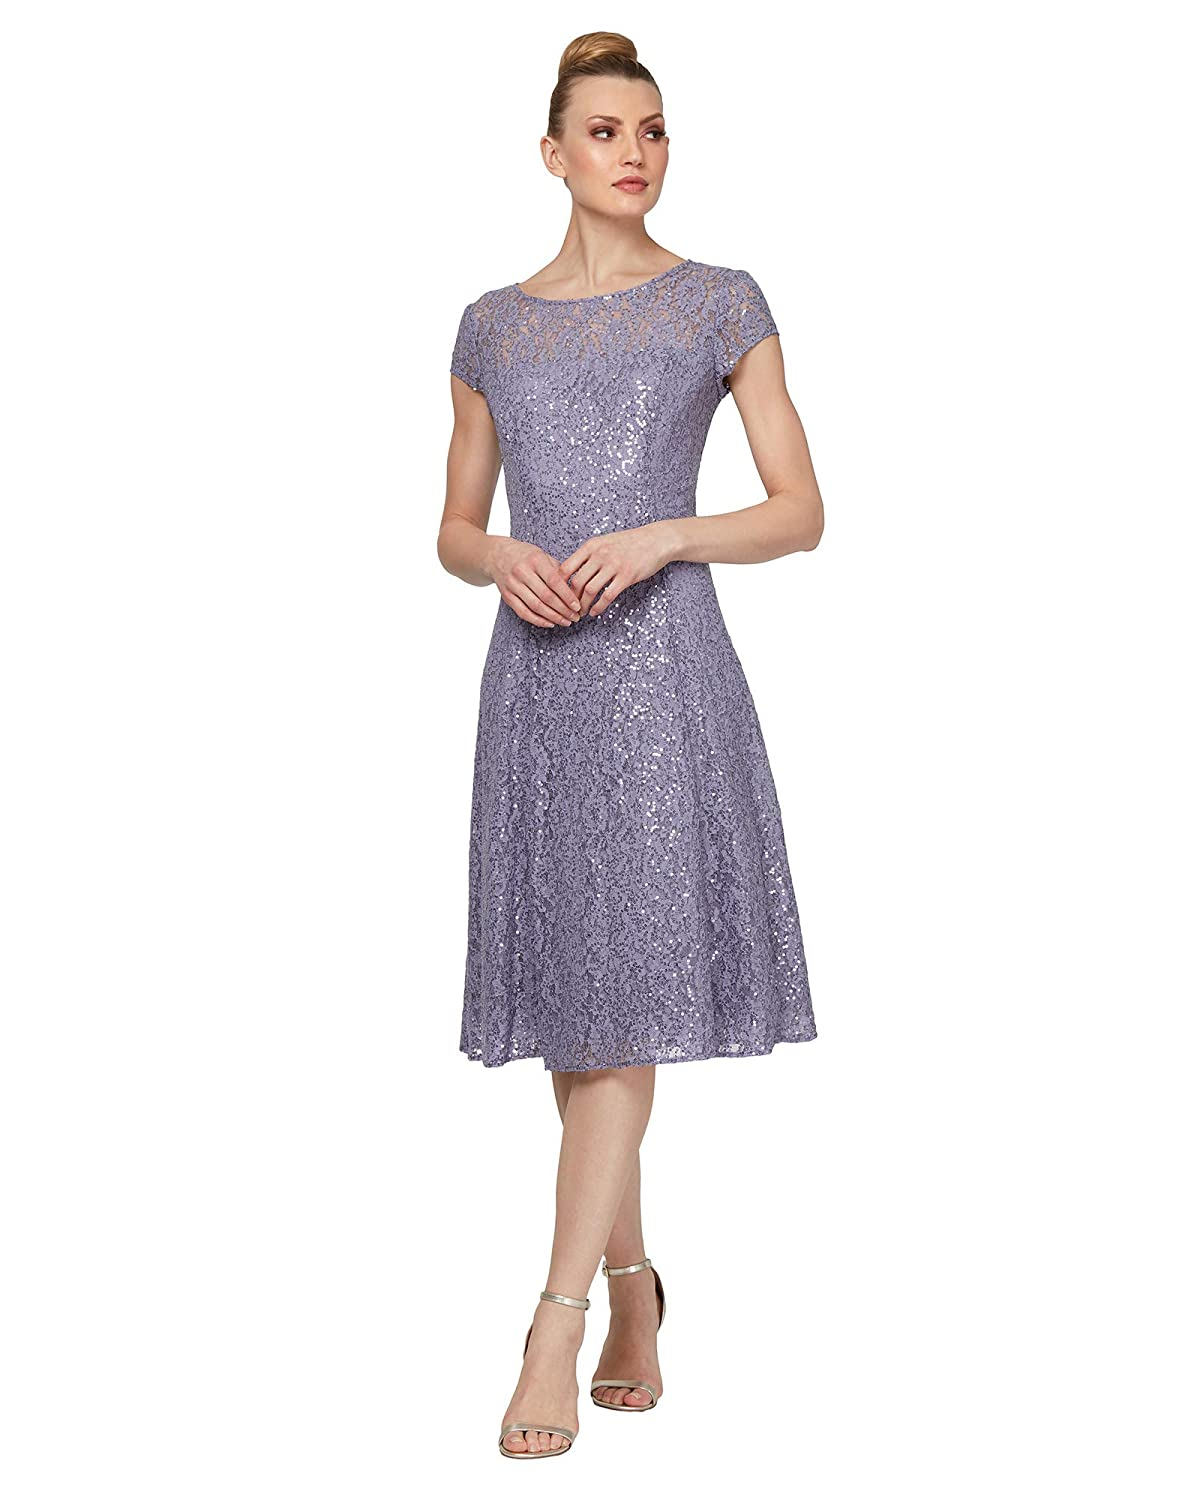 S.L Fashions Womens Lace and Sequin Fit and Flare Dress